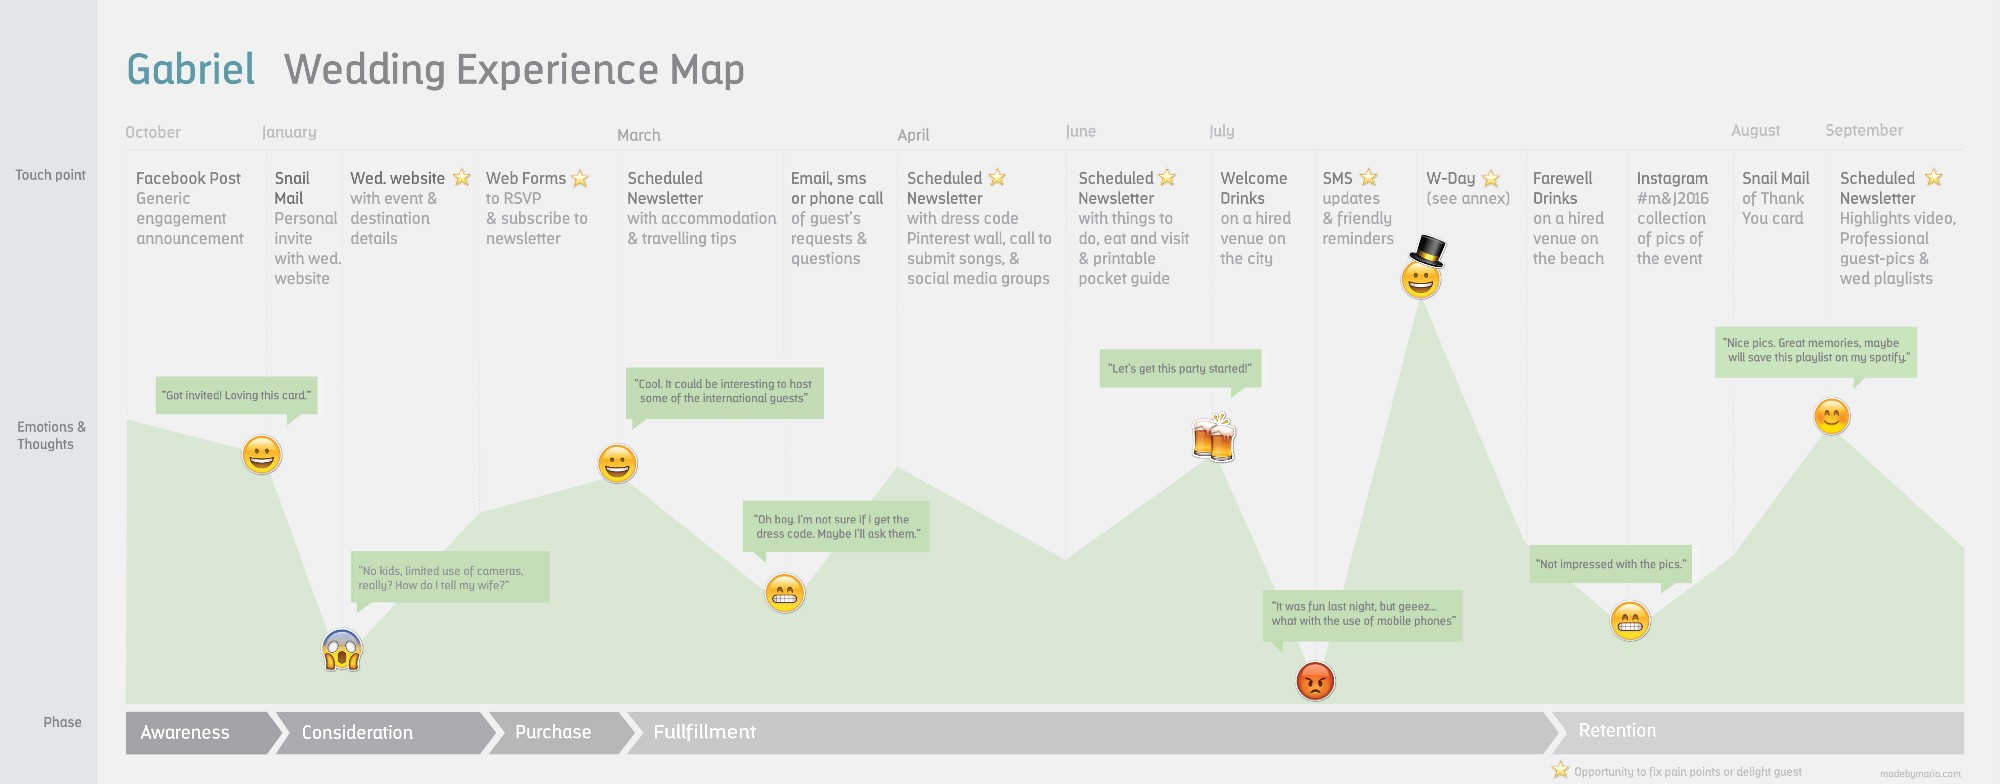 Using Customer Journey Maps To Improve Experiences Part 2